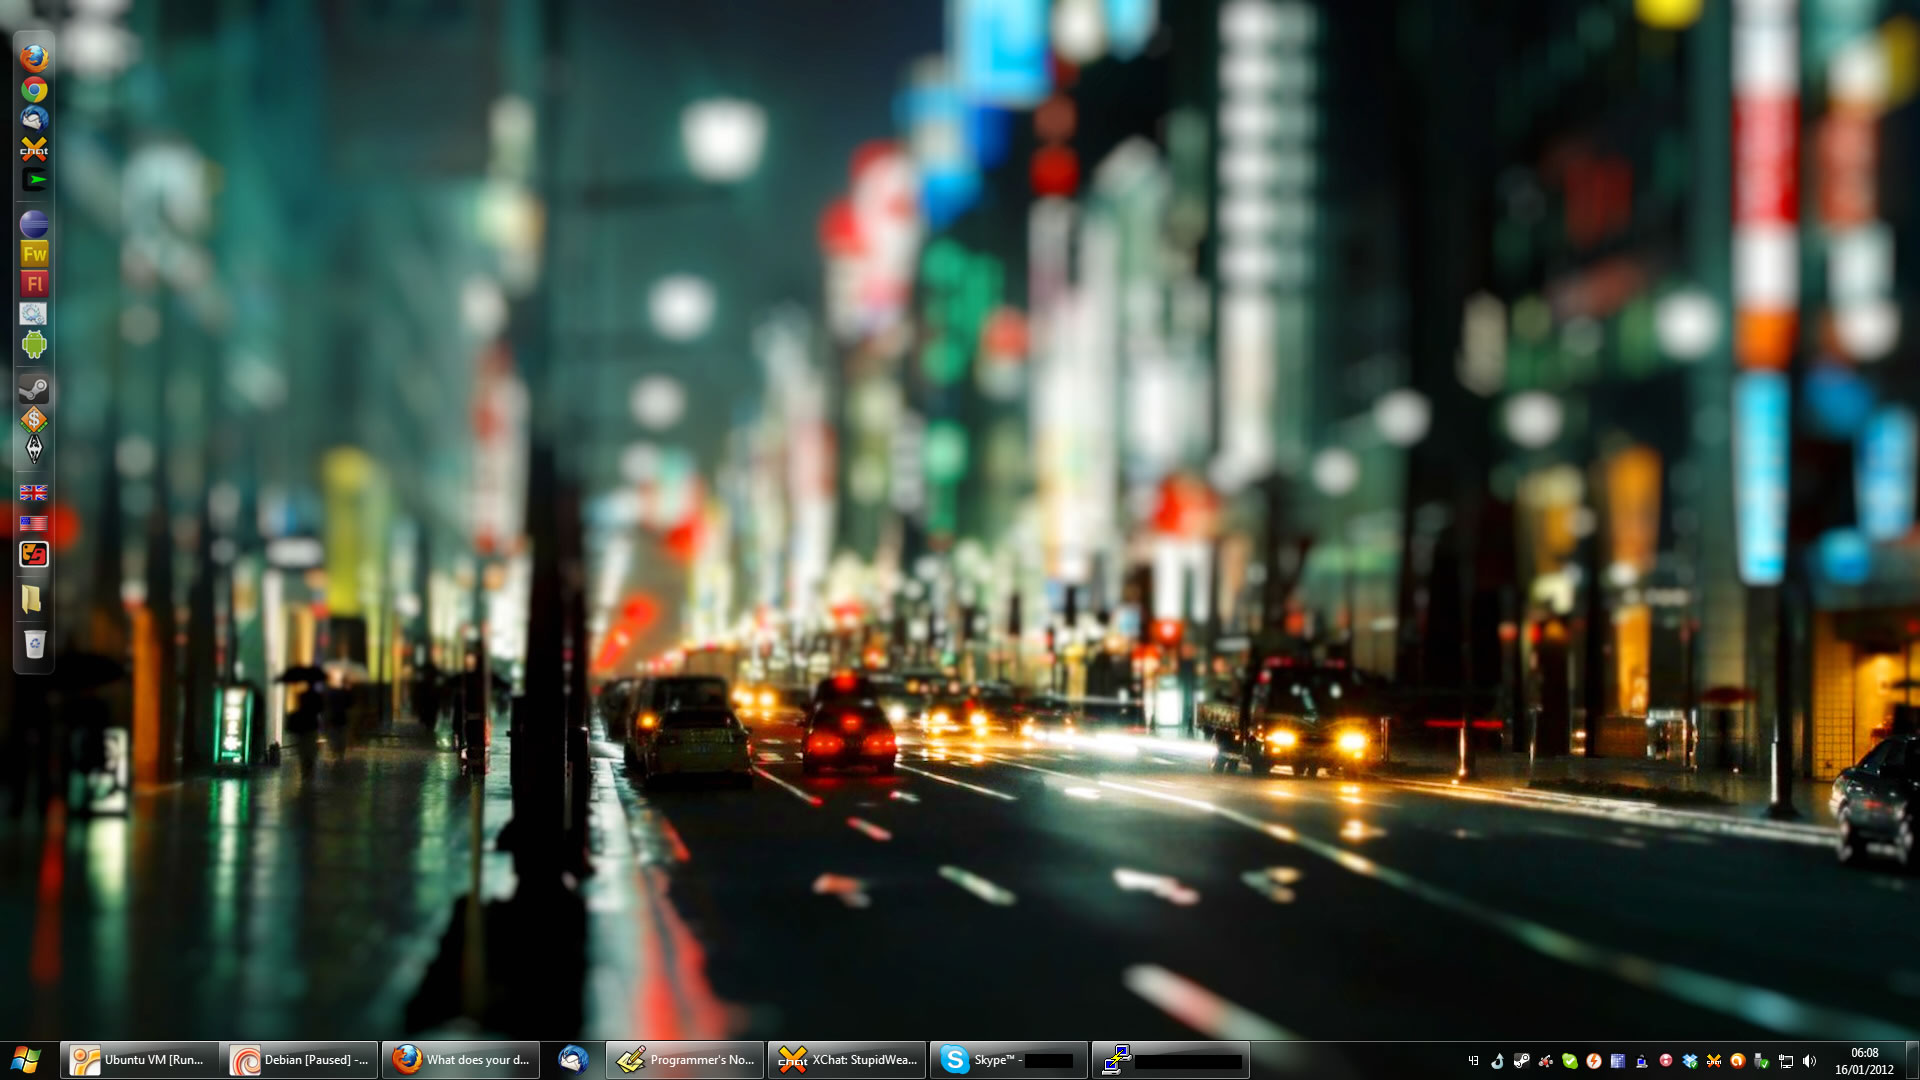 Collection of Coolest Desktop Wallpaper Ever on HDWallpapers